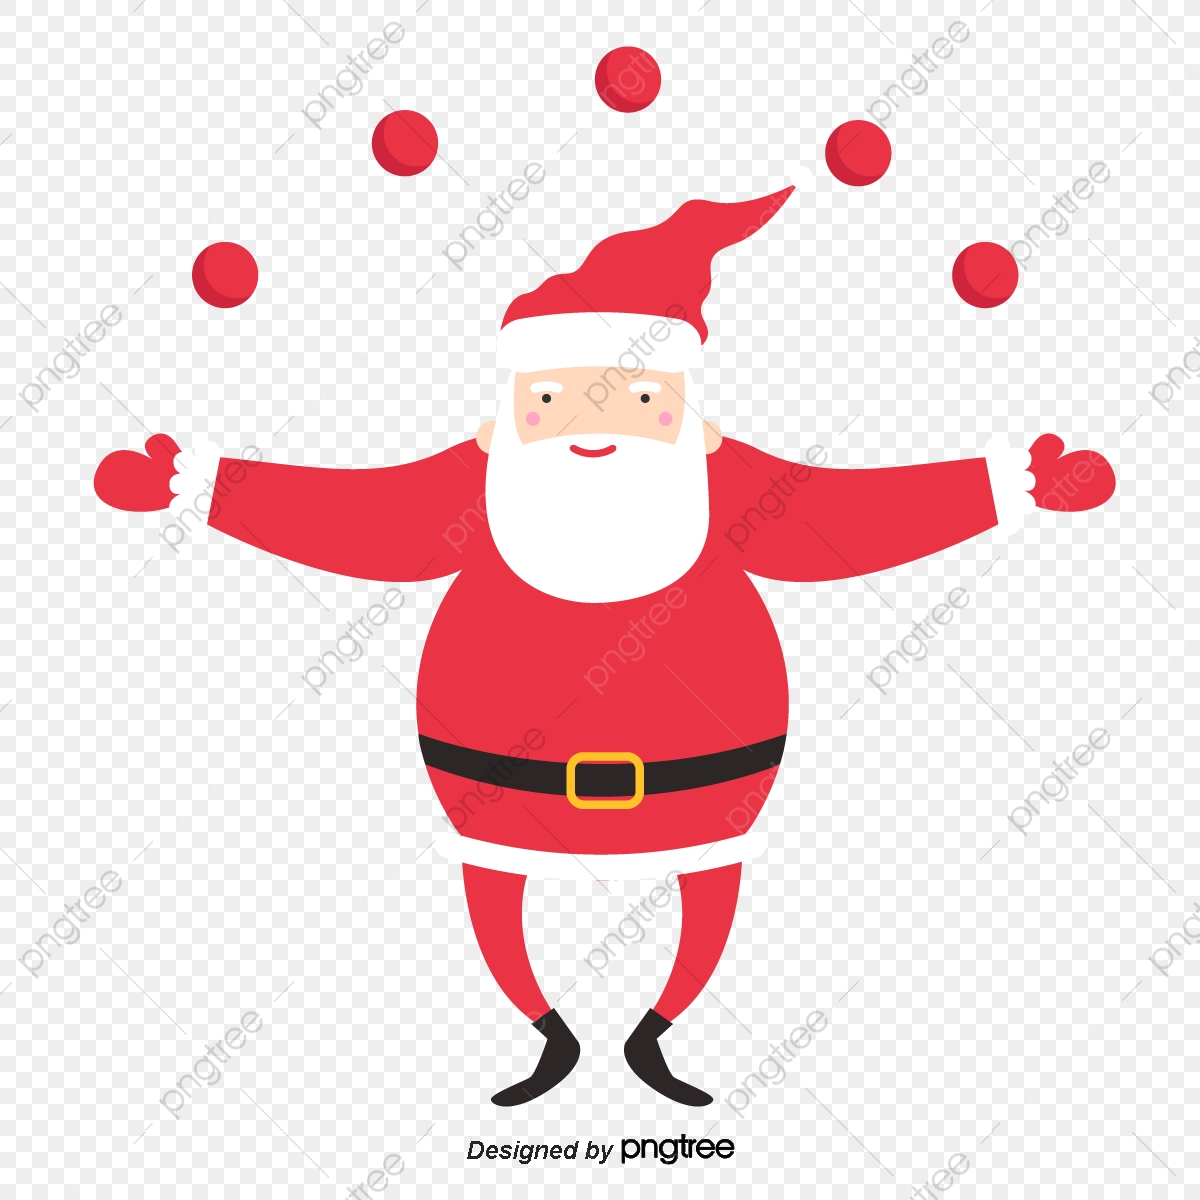 Cute Cartoon Dancing Santa Element Cartoon Christmas Santa Claus Png And Vector With Transparent Background For Free Download